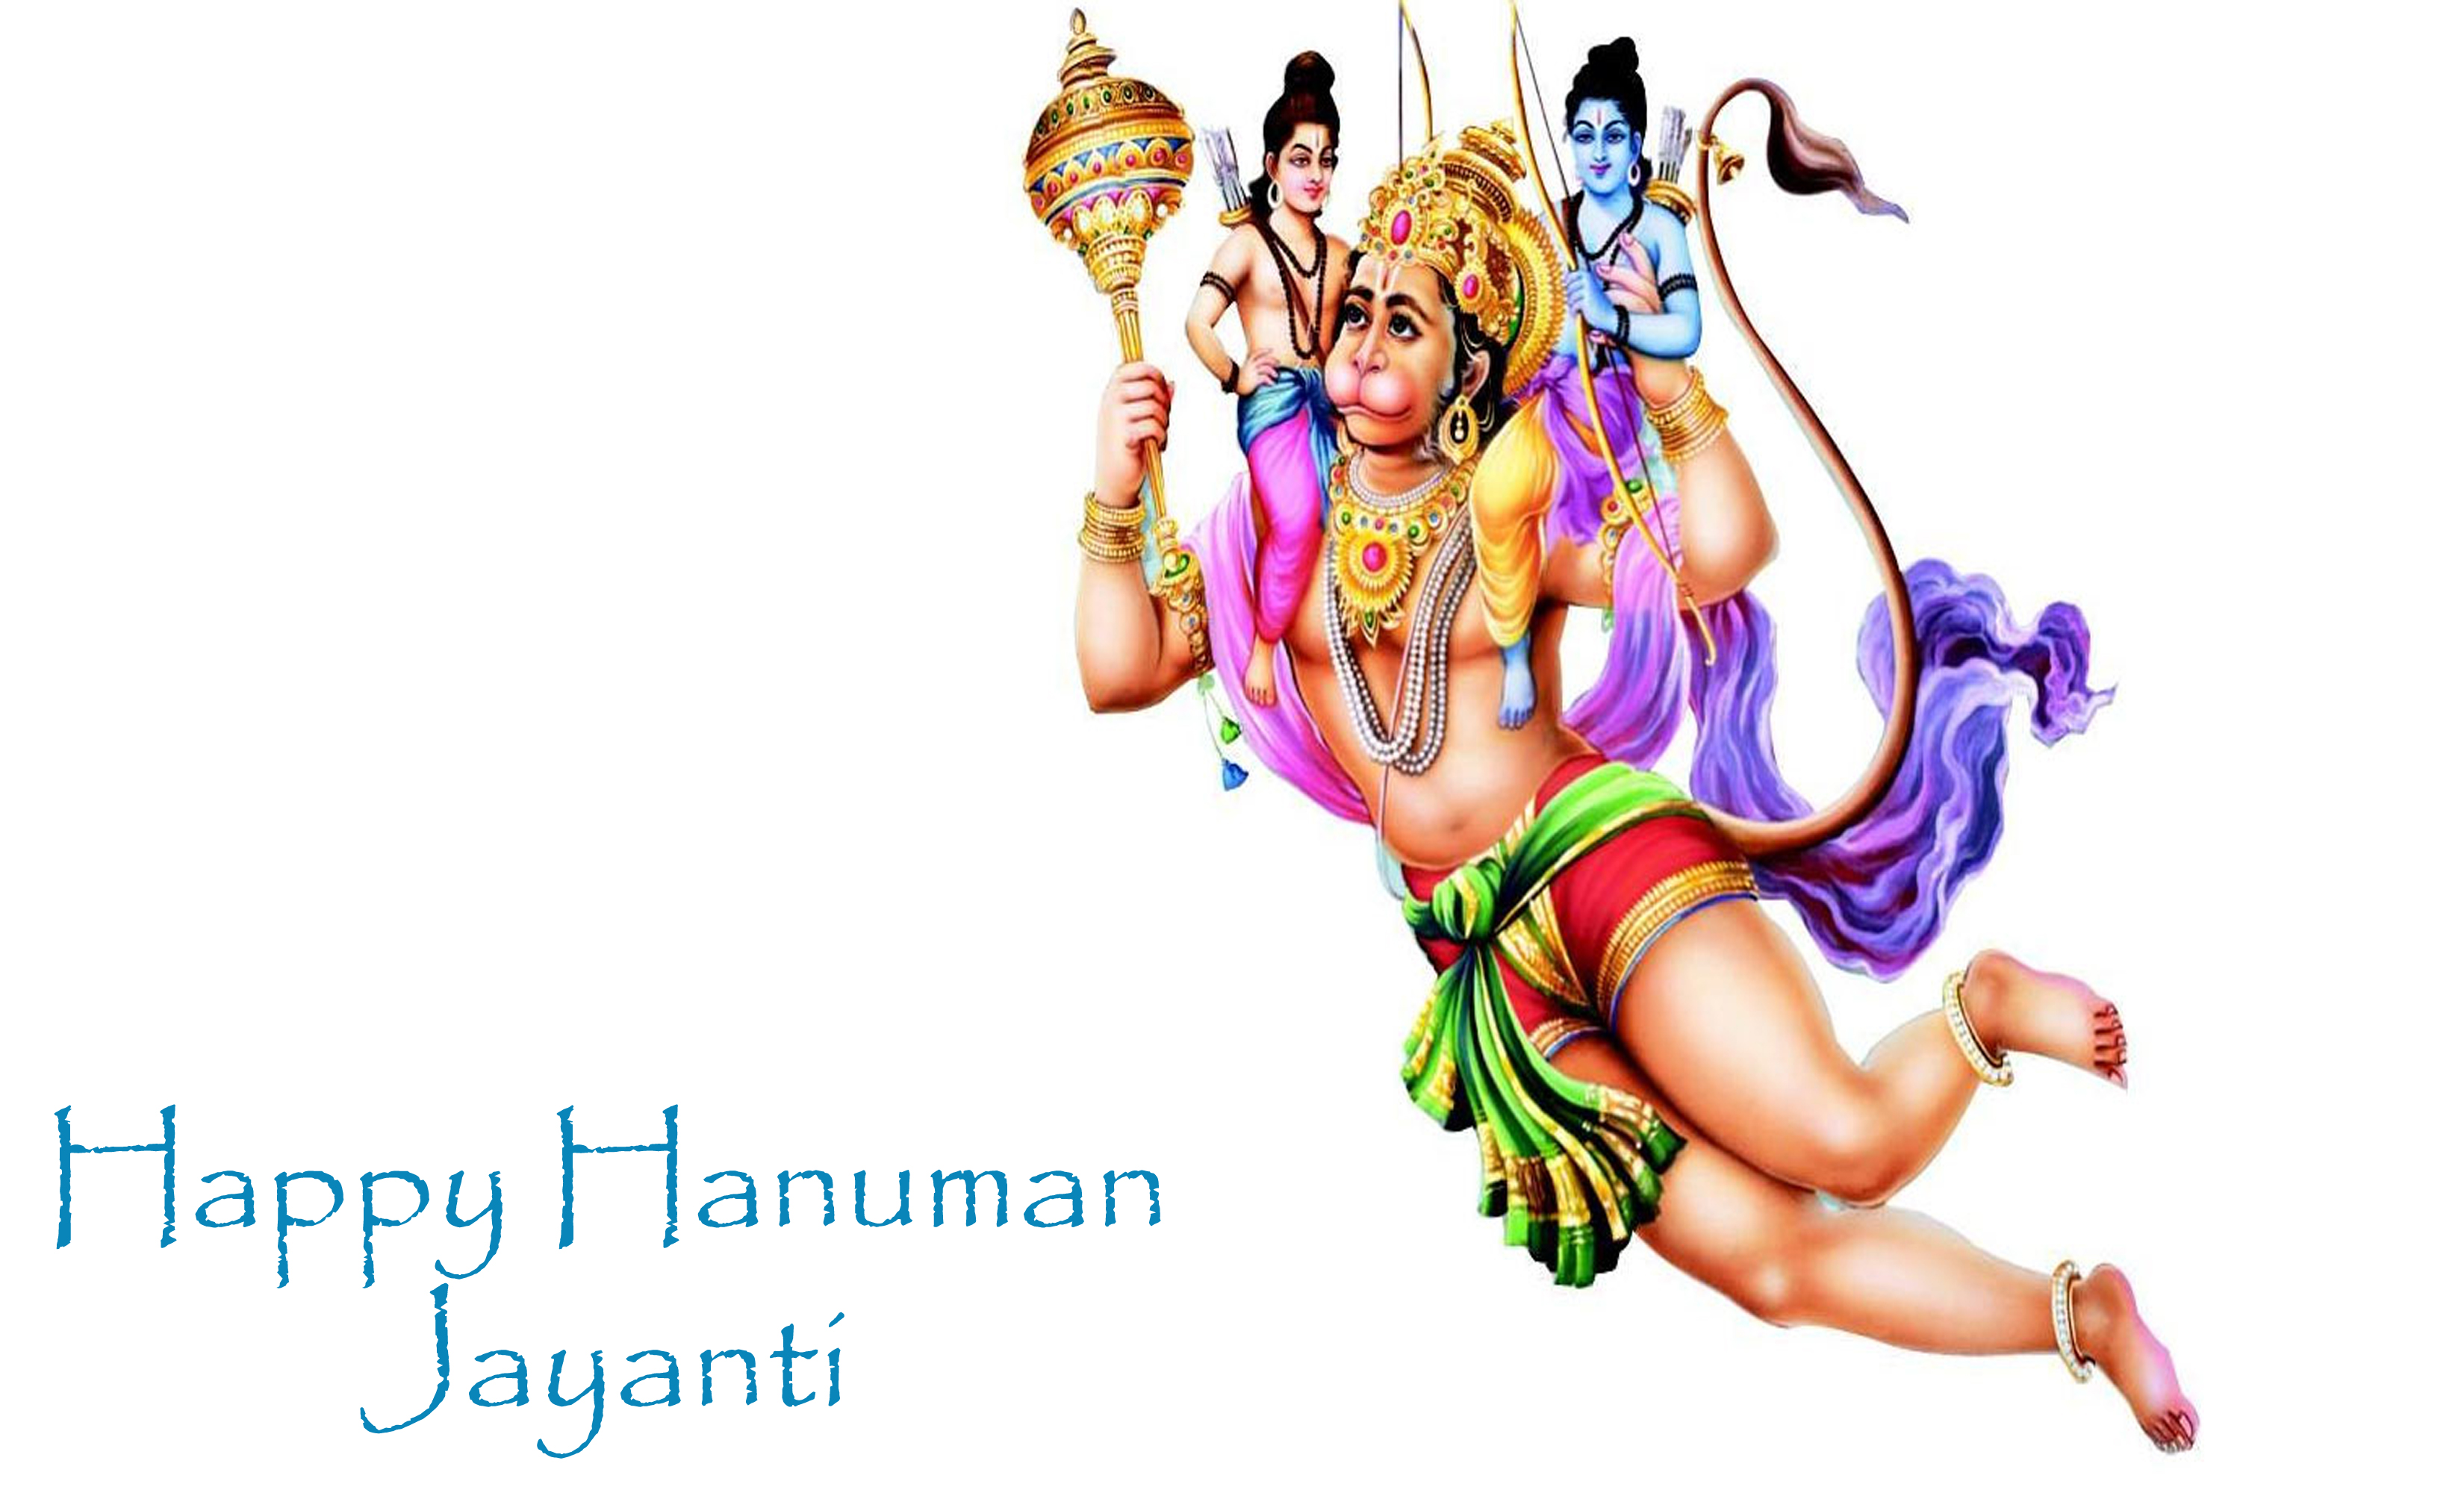 Happy Hanuman Jayanti Wallpapers